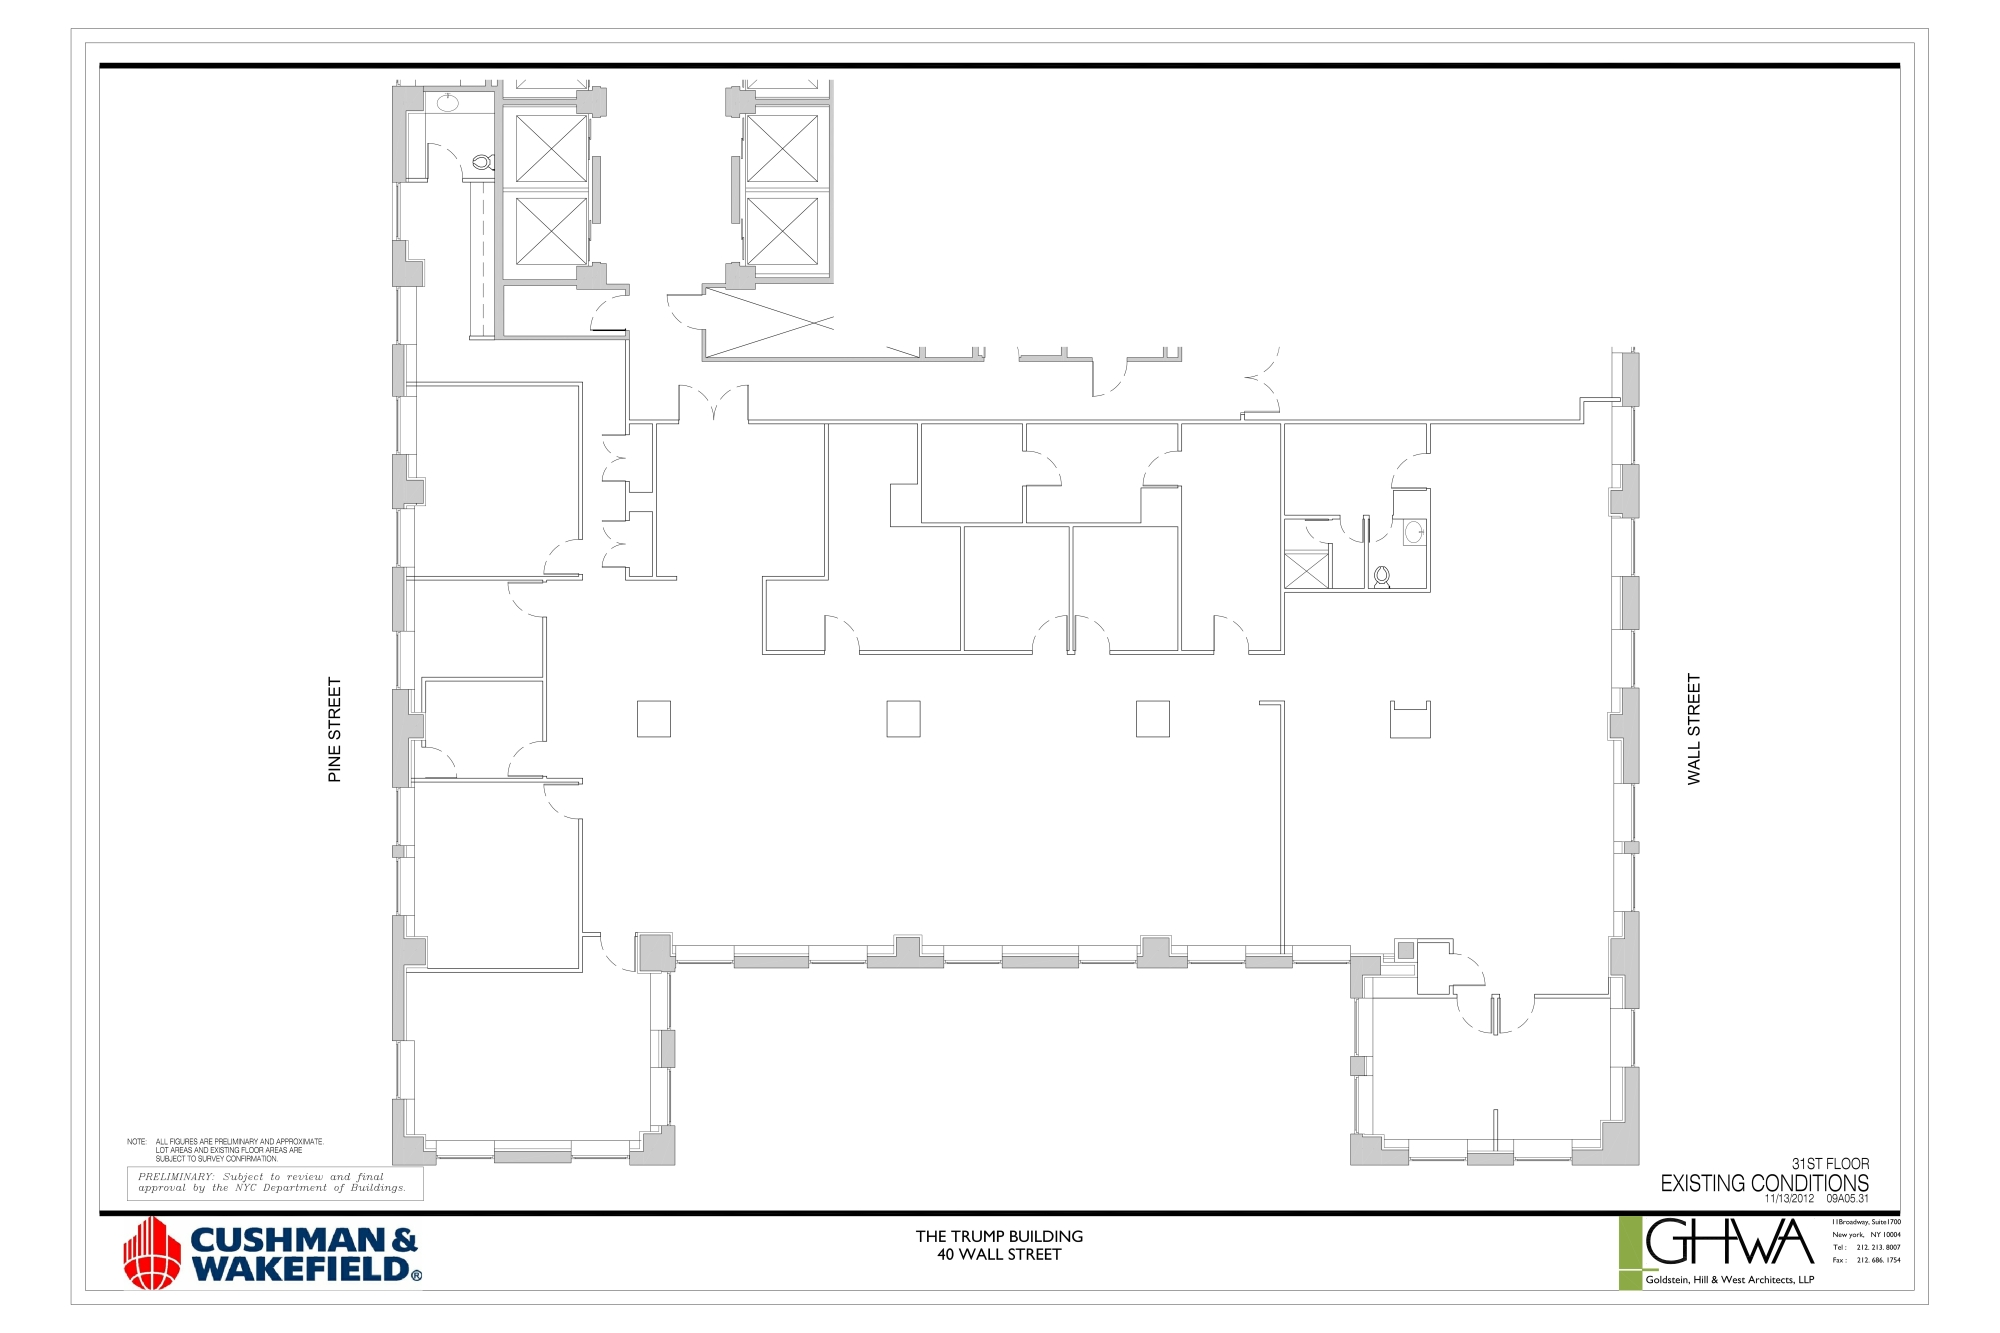 40 wall street trump tower floorplans new york city living like the trumps downtown chicago real estate